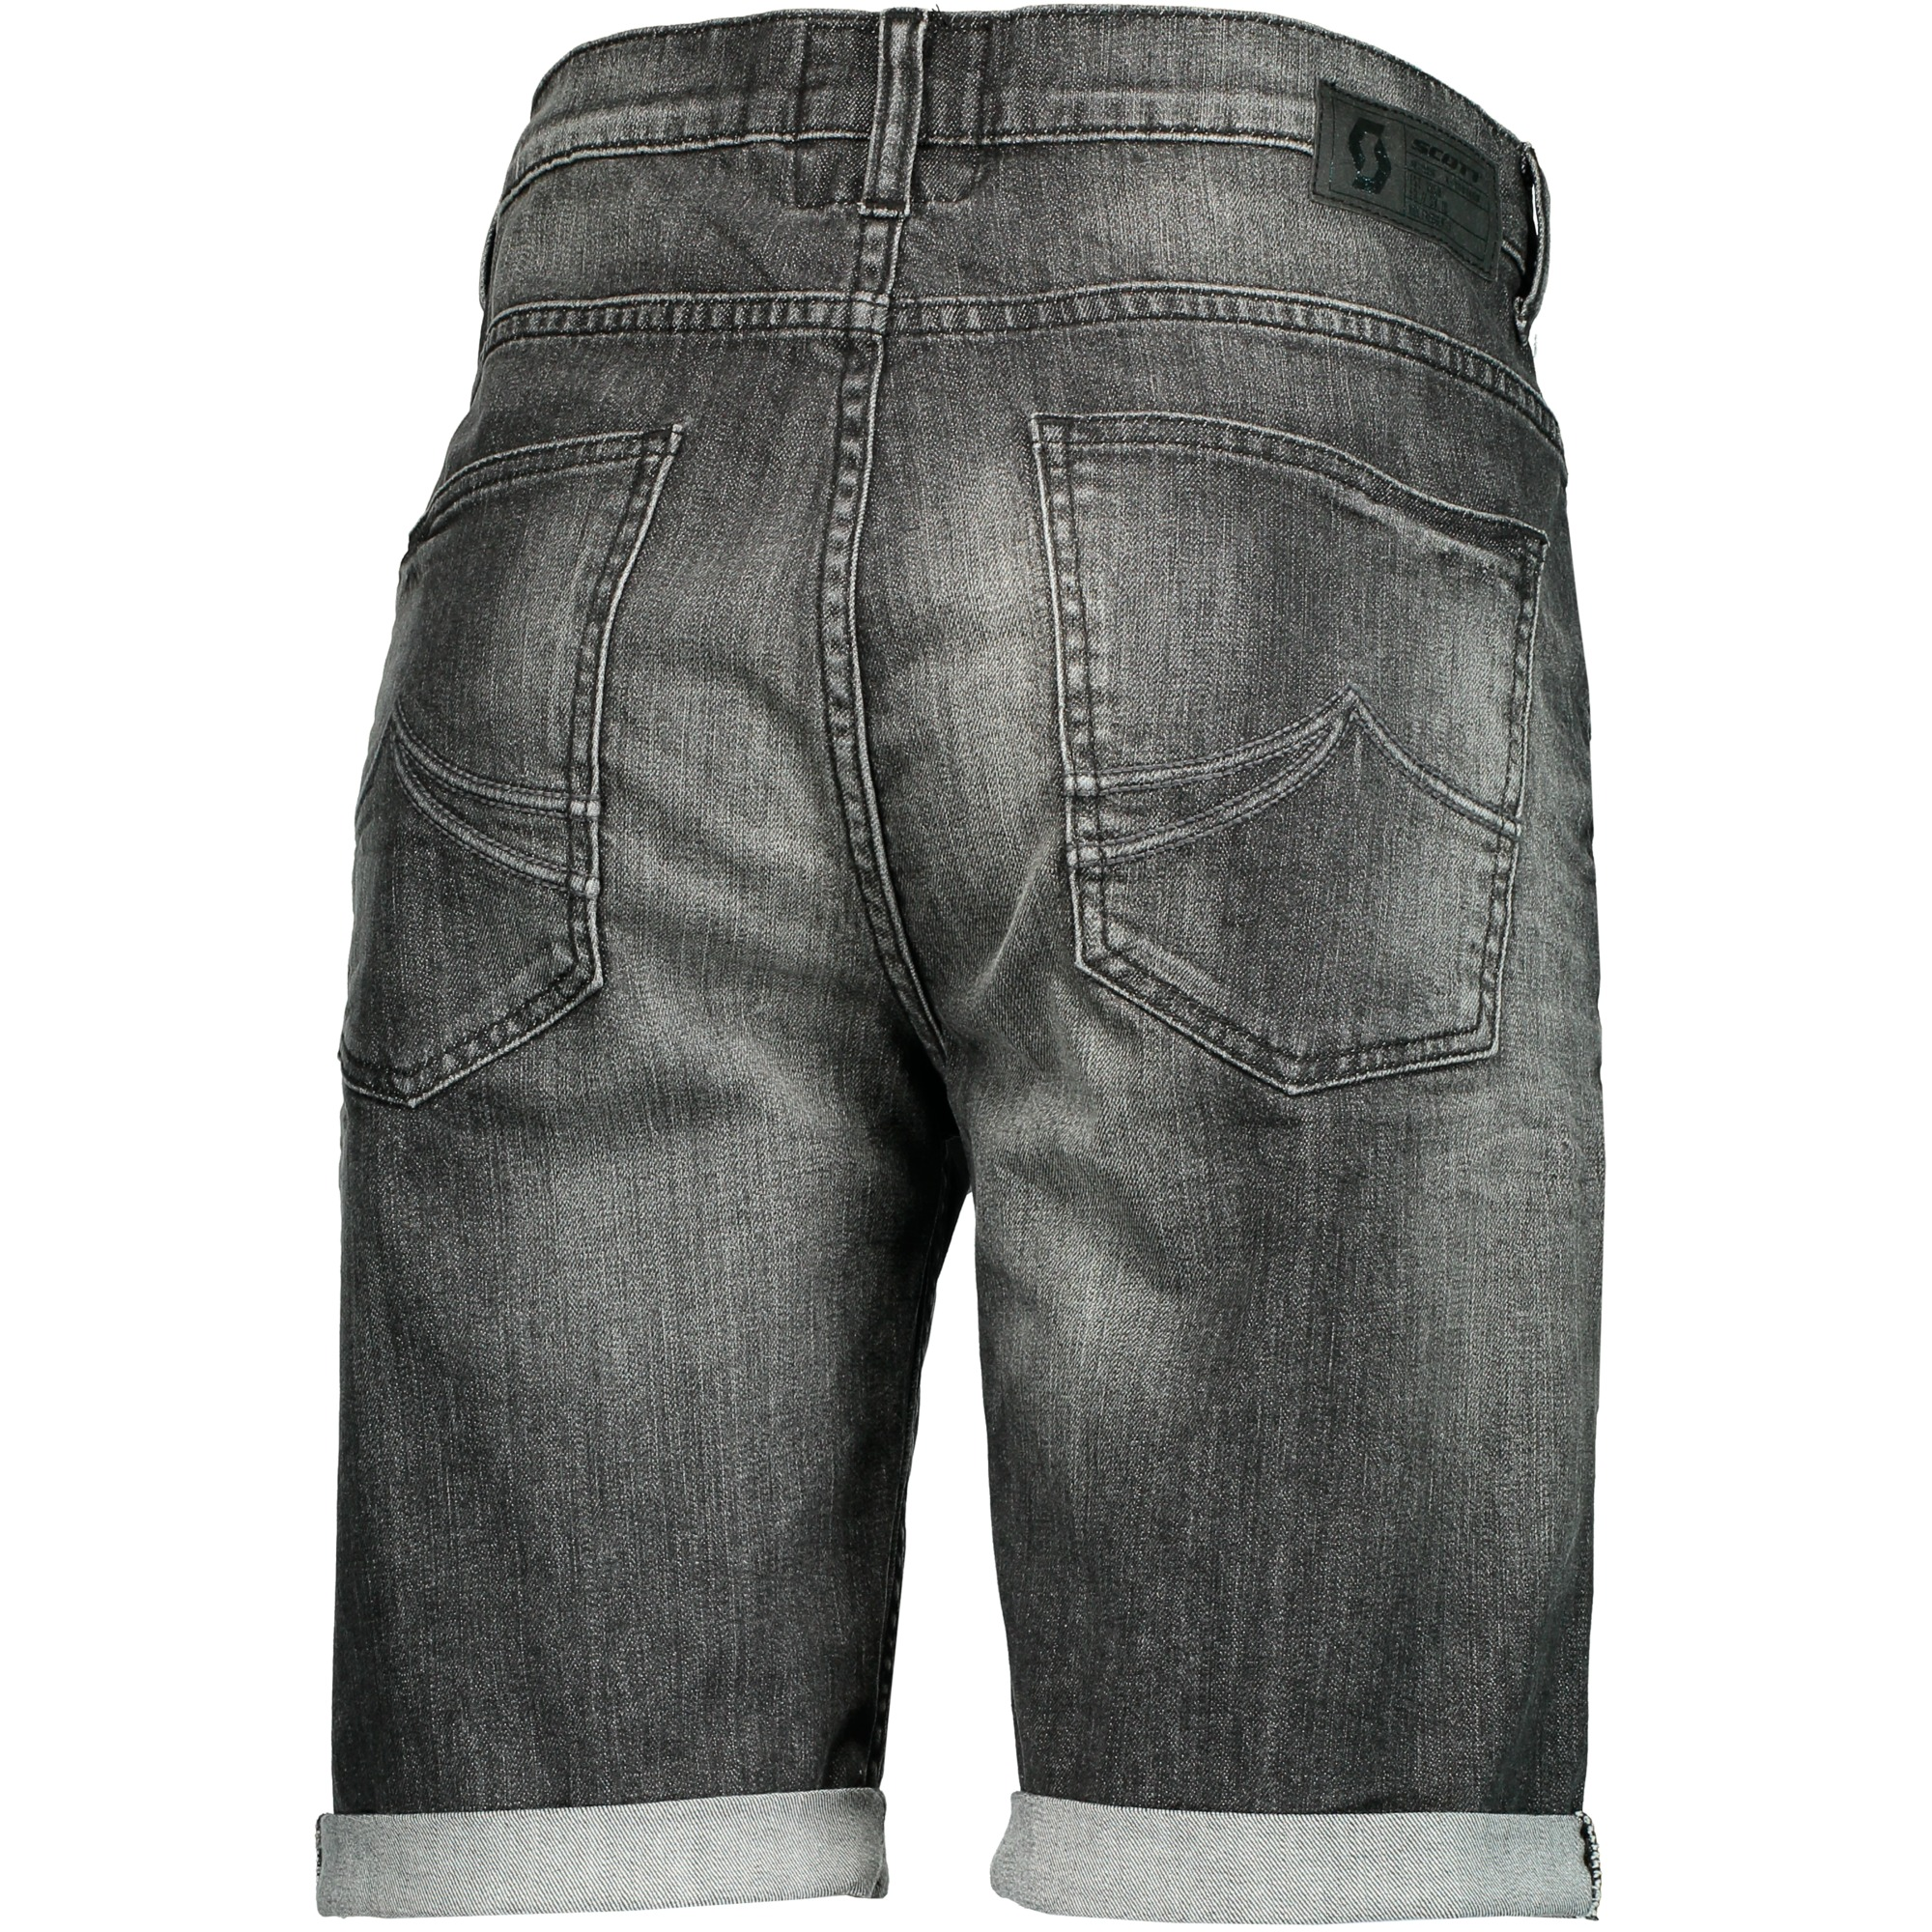 SCOTT Factory Team Denim Shorts